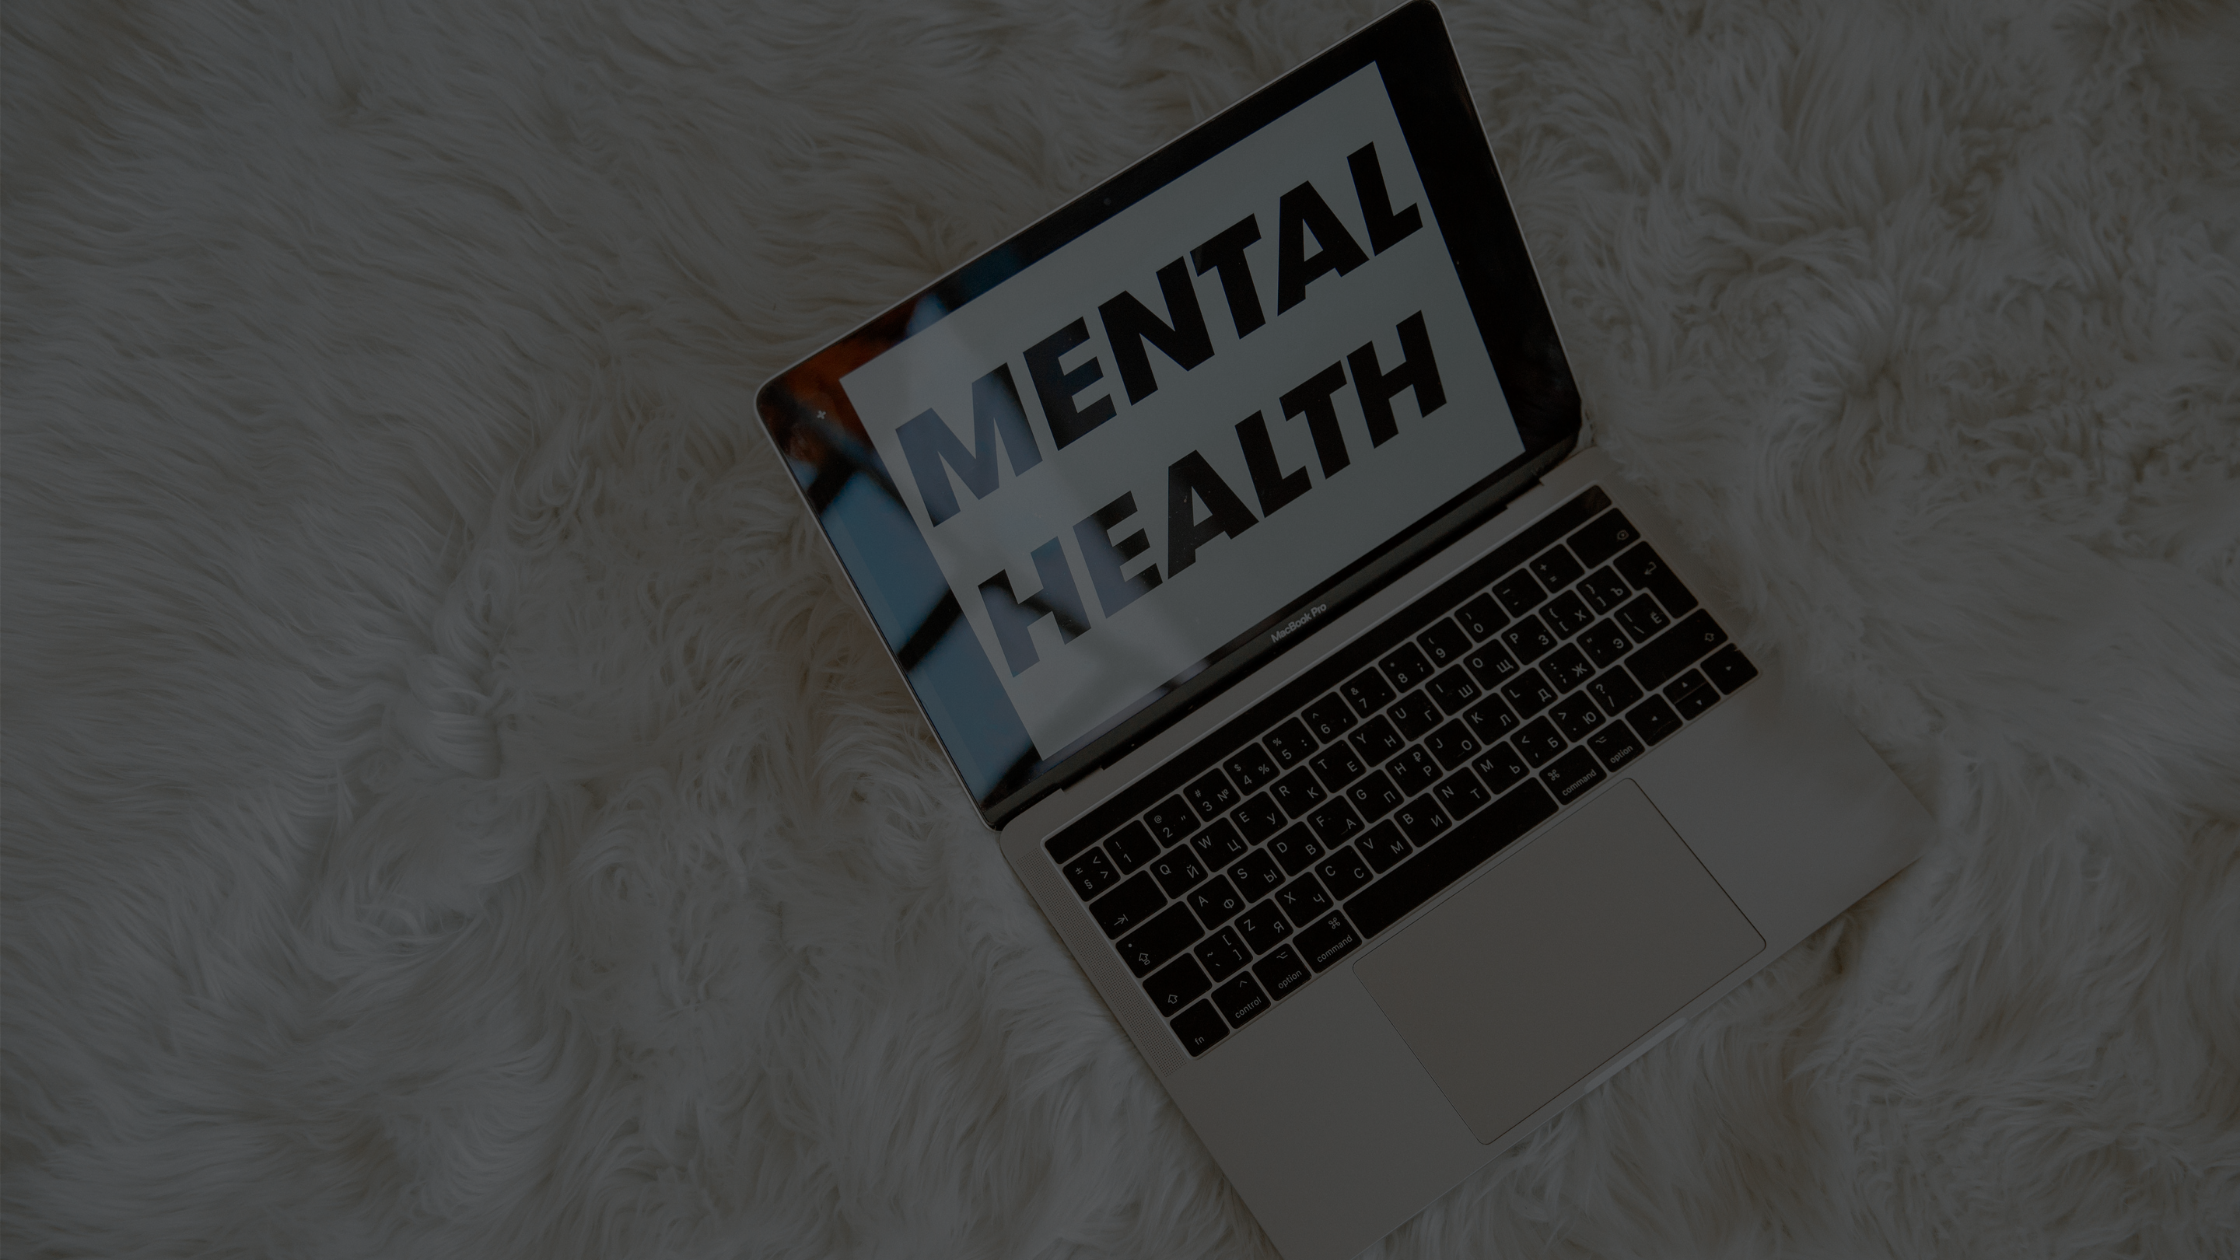 Essential workersrequire mental health and wellness resources intimes of crisis